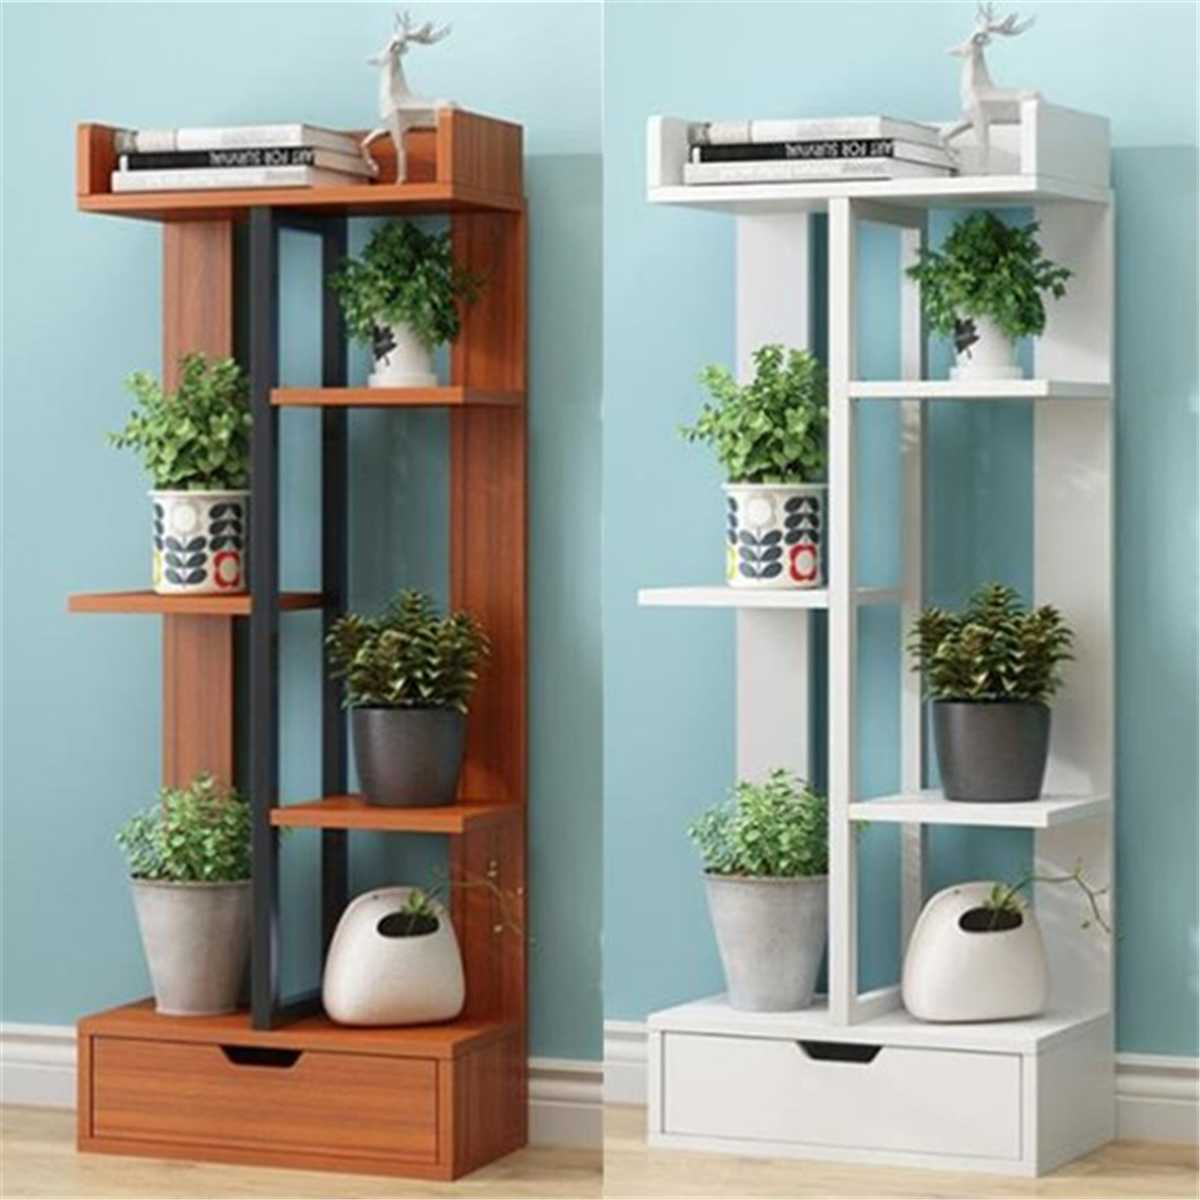 Modern Decorative Wood Plant Rack Stand Flower Shelf Multi-Layer With Drawer Indoor Living Room Bonsai Display Shelf Plant Stand